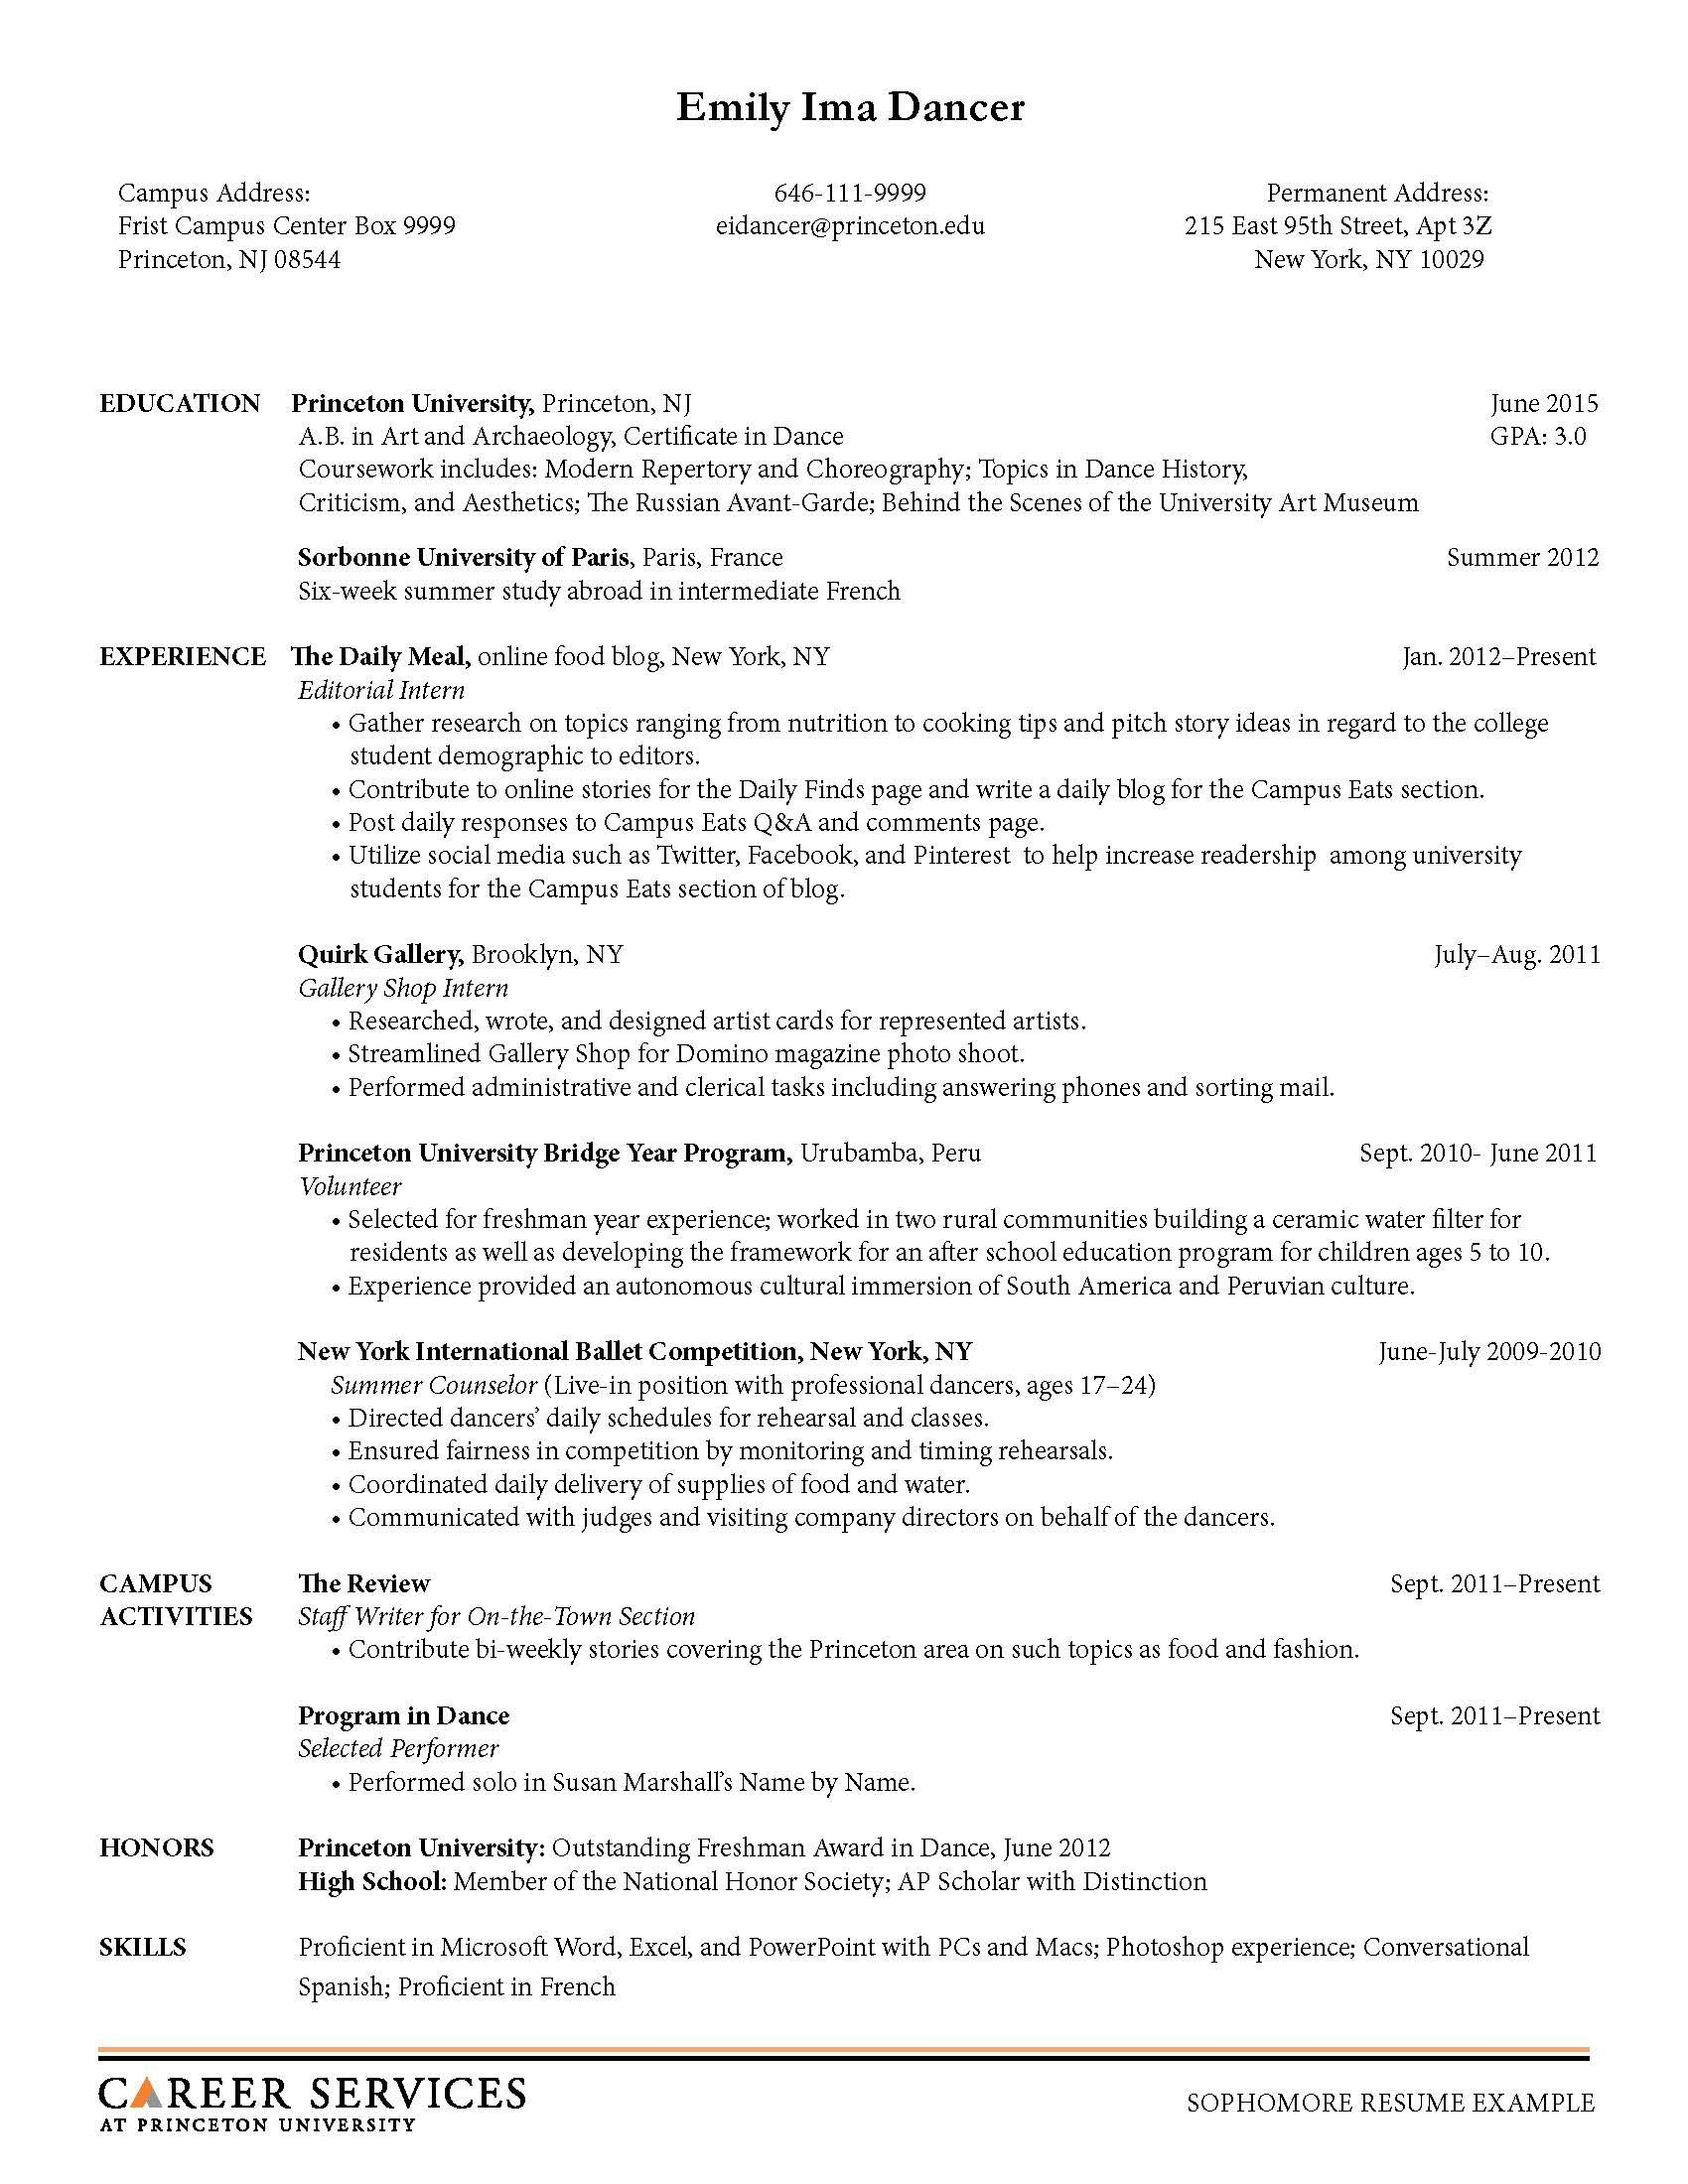 Opposenewapstandardsus  Pleasant Sample Resume Resume And Career On Pinterest With Exciting Maintenance Resume Besides Microsoft Word Resume Templates Furthermore Resume With No Experience With Charming Resume And Cover Letter Also Resume Guide In Addition Substitute Teacher Resume And Objective Statement Resume As Well As Executive Resume Template Additionally Video Resume From Pinterestcom With Opposenewapstandardsus  Exciting Sample Resume Resume And Career On Pinterest With Charming Maintenance Resume Besides Microsoft Word Resume Templates Furthermore Resume With No Experience And Pleasant Resume And Cover Letter Also Resume Guide In Addition Substitute Teacher Resume From Pinterestcom